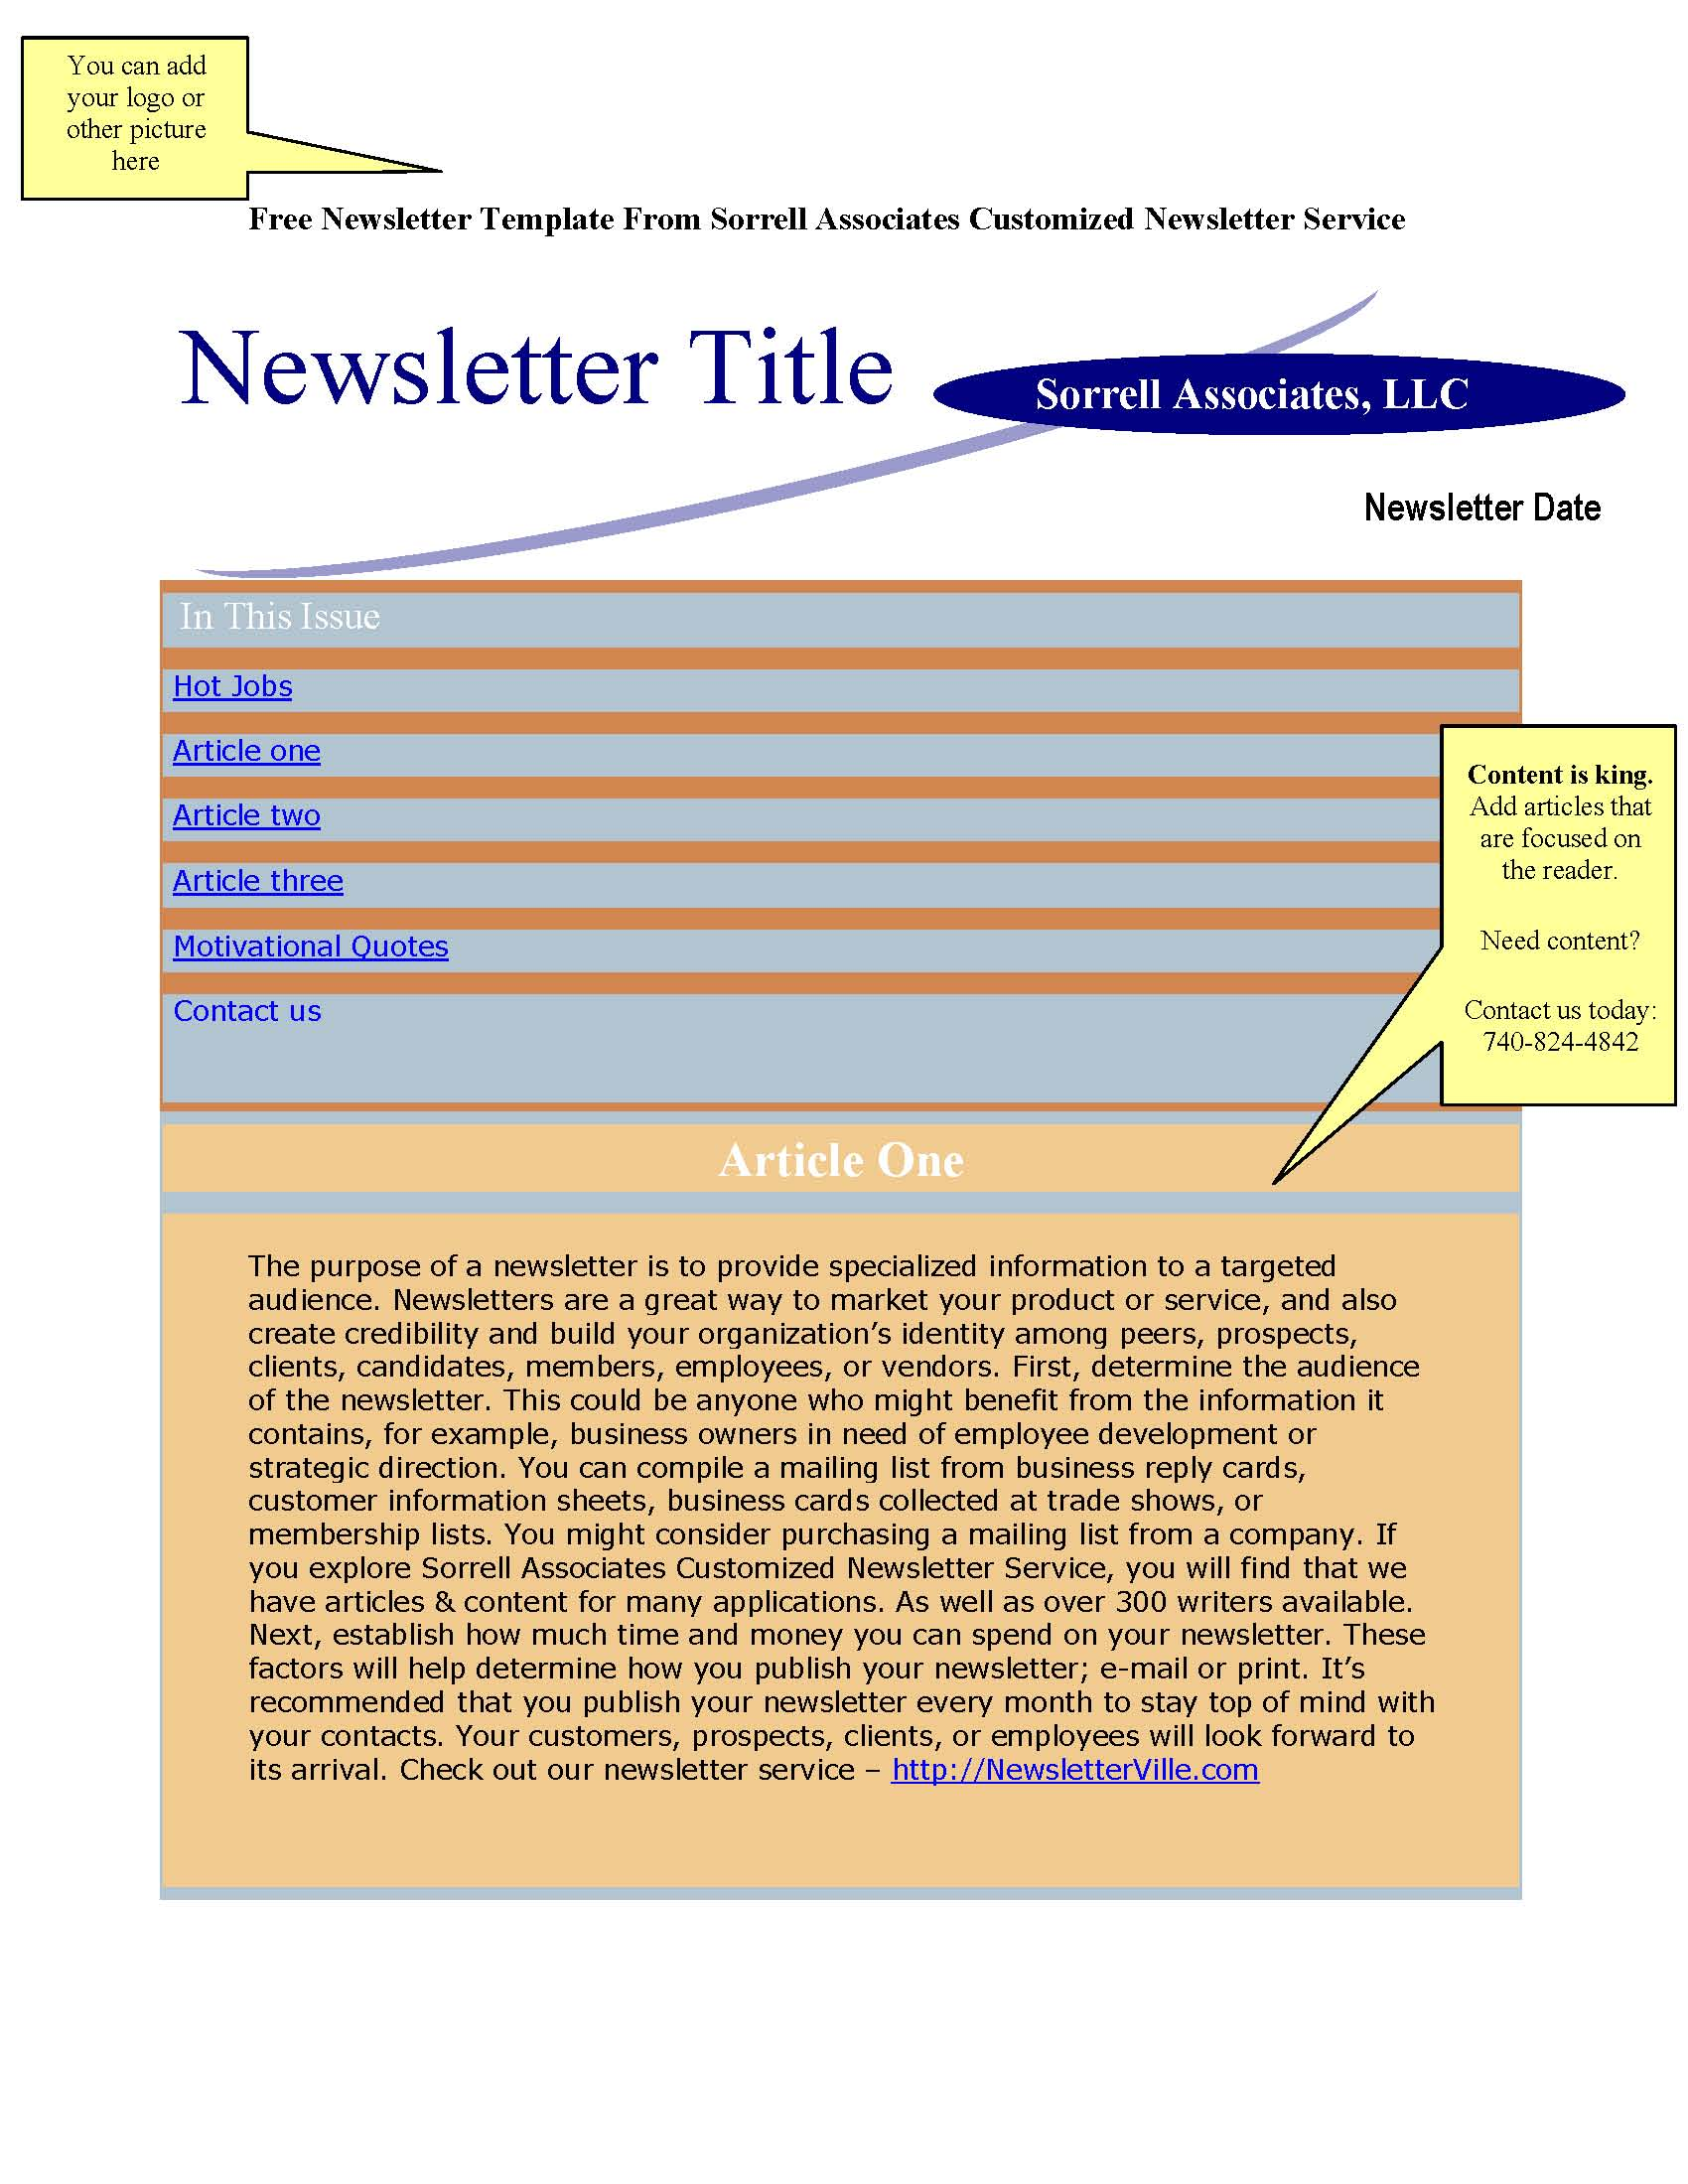 Newsletter Blog Articles Provided Plus Free Newsletter Design - Newsletter format template